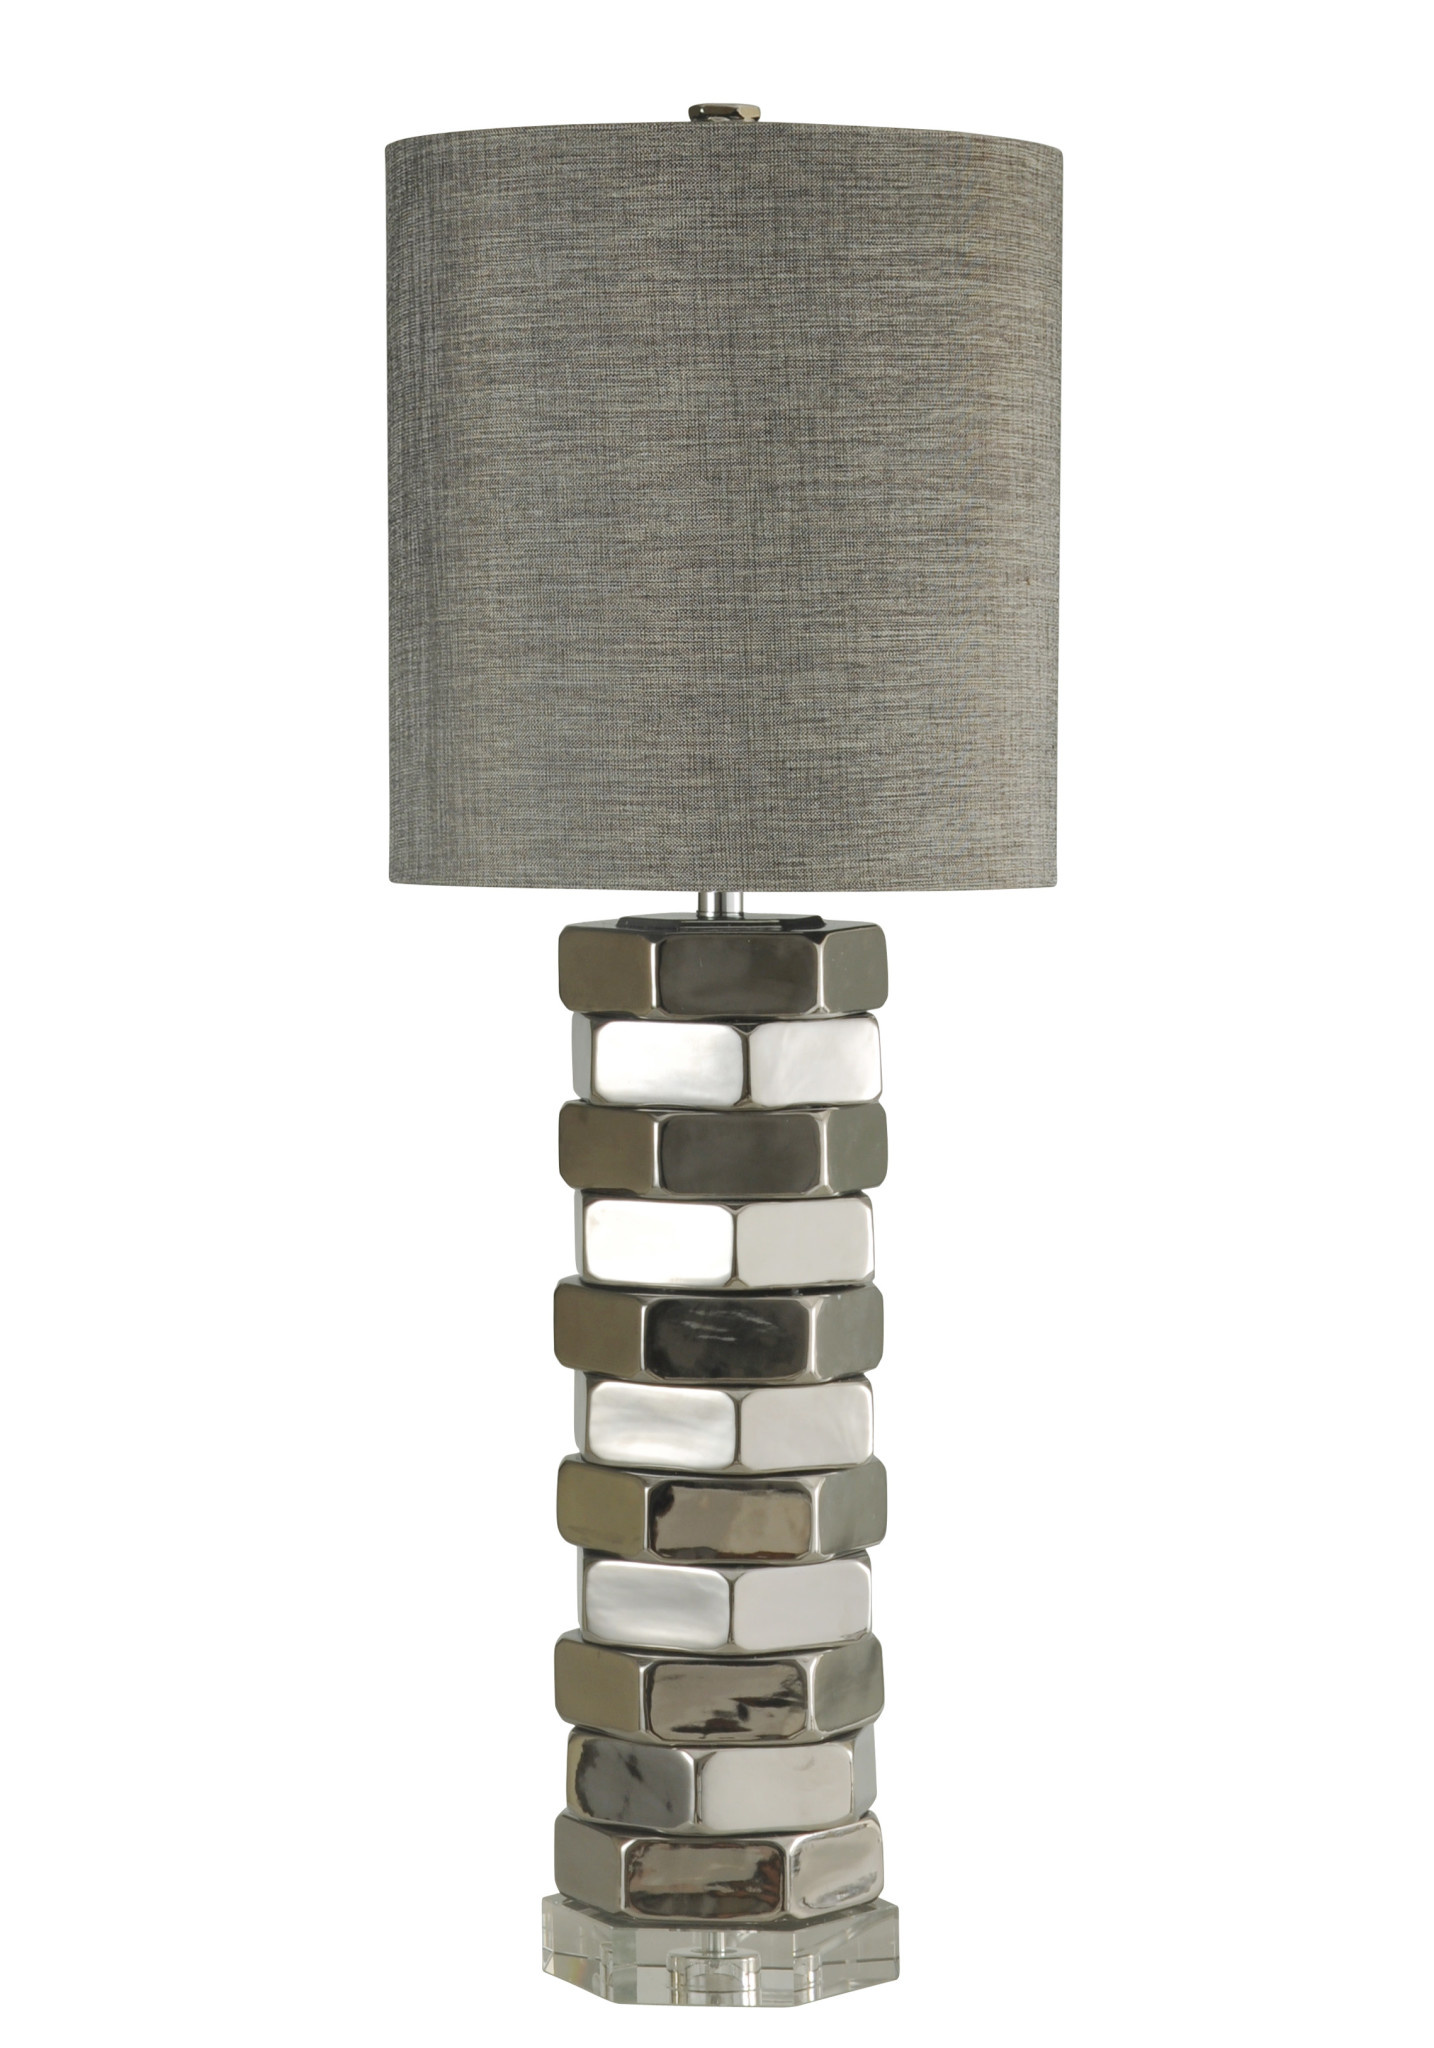 SELBY TABLE LAMP - disc